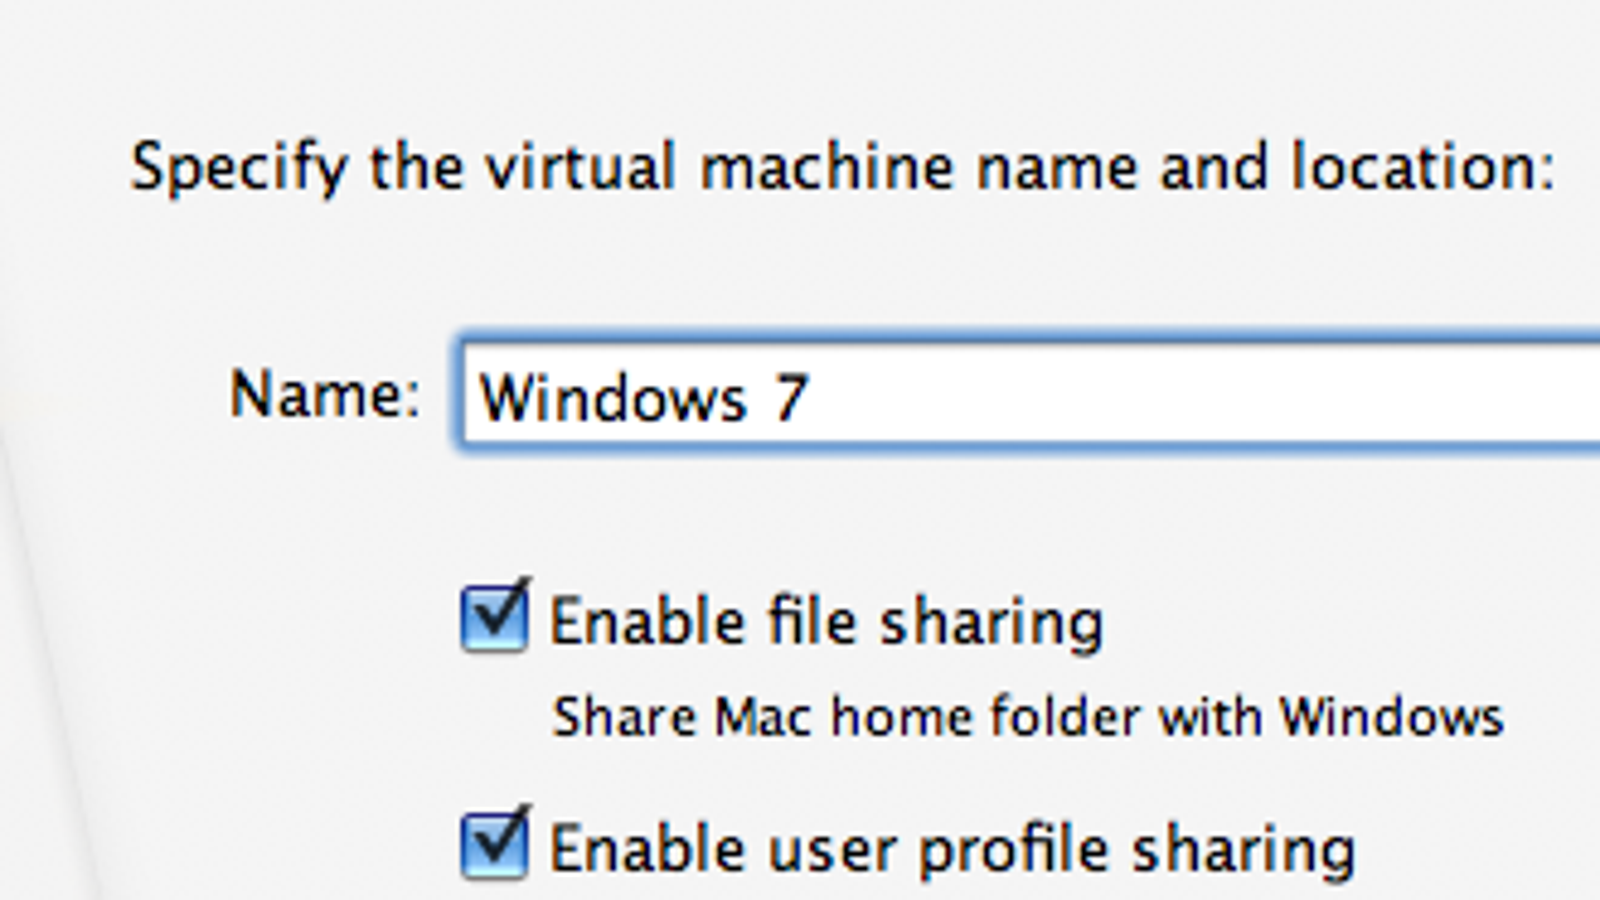 Install Windows 7 Beta on Your Mac with Parallels